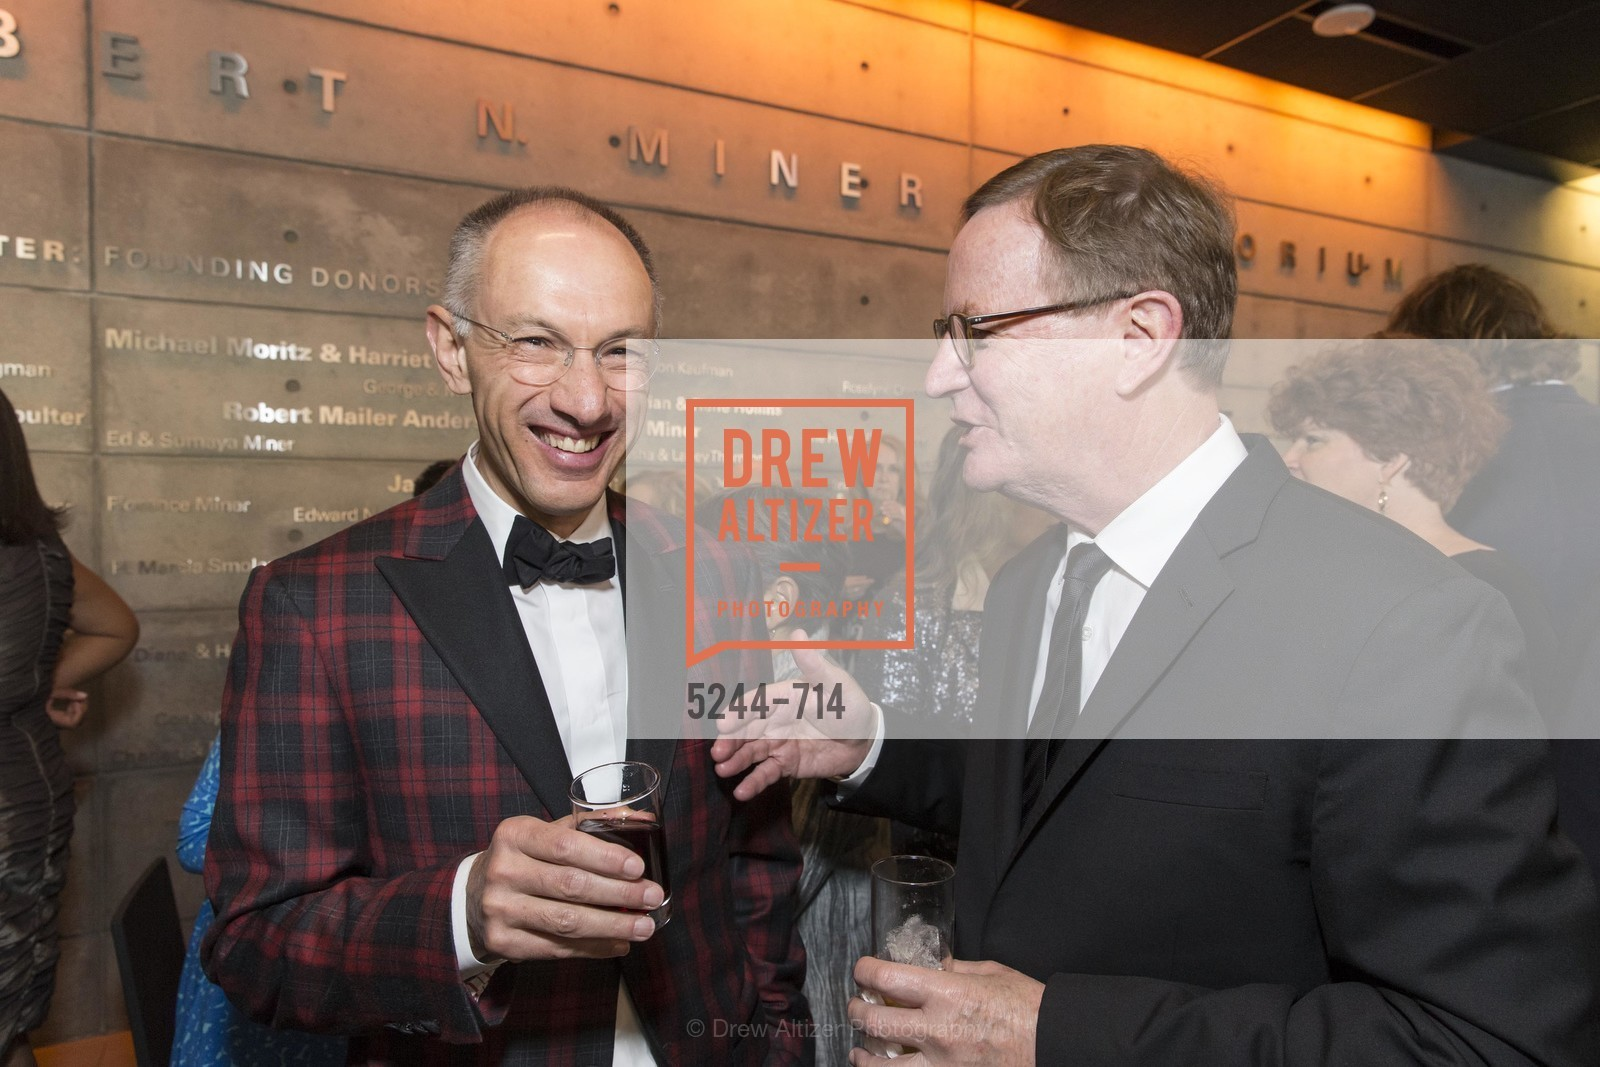 Michael Moritz, Sam Hawgood, SFJAZZ Gala 2015 Honors Joni Mitchell with Lifetime Achievement Award, US, May 8th, 2015,Drew Altizer, Drew Altizer Photography, full-service agency, private events, San Francisco photographer, photographer california